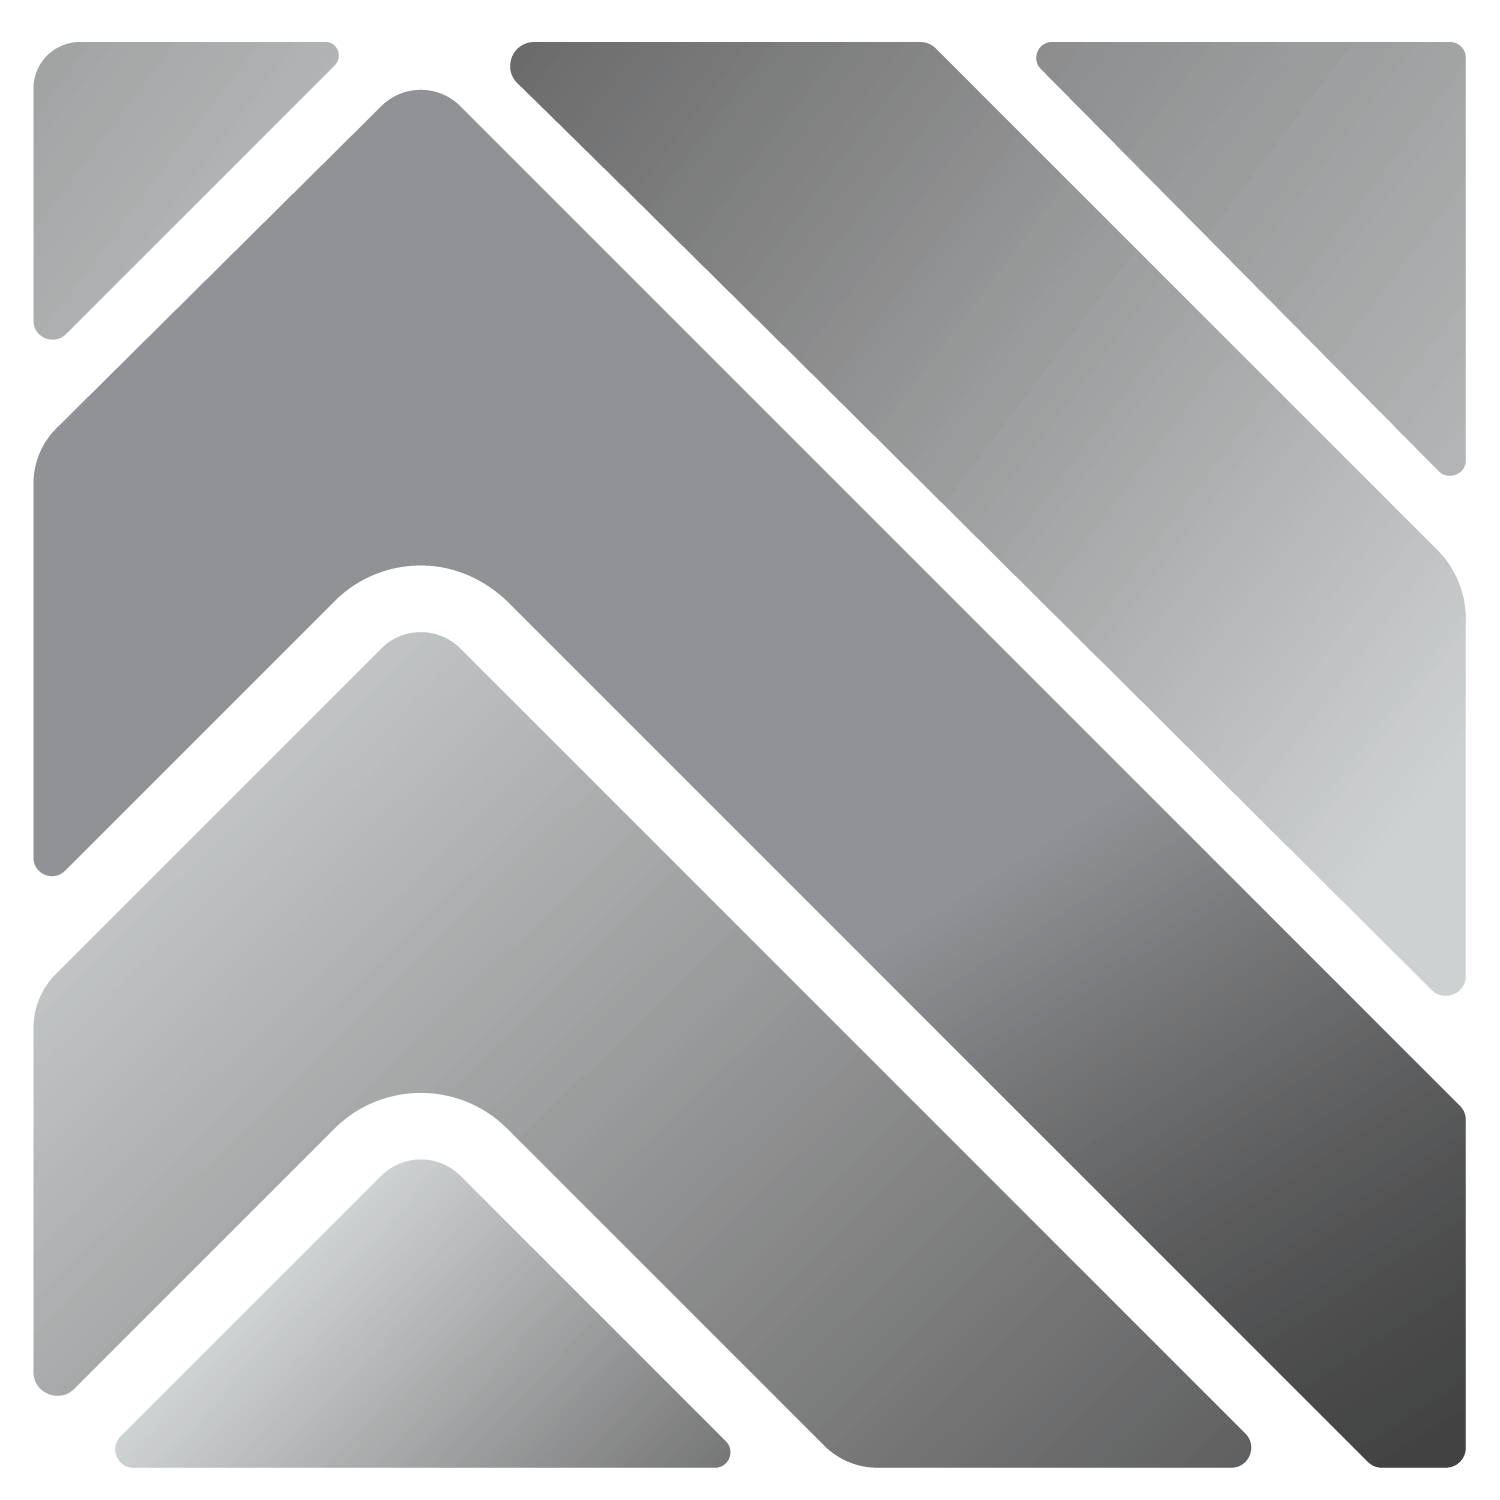 grayscale version for the Water and Energy for Food icon